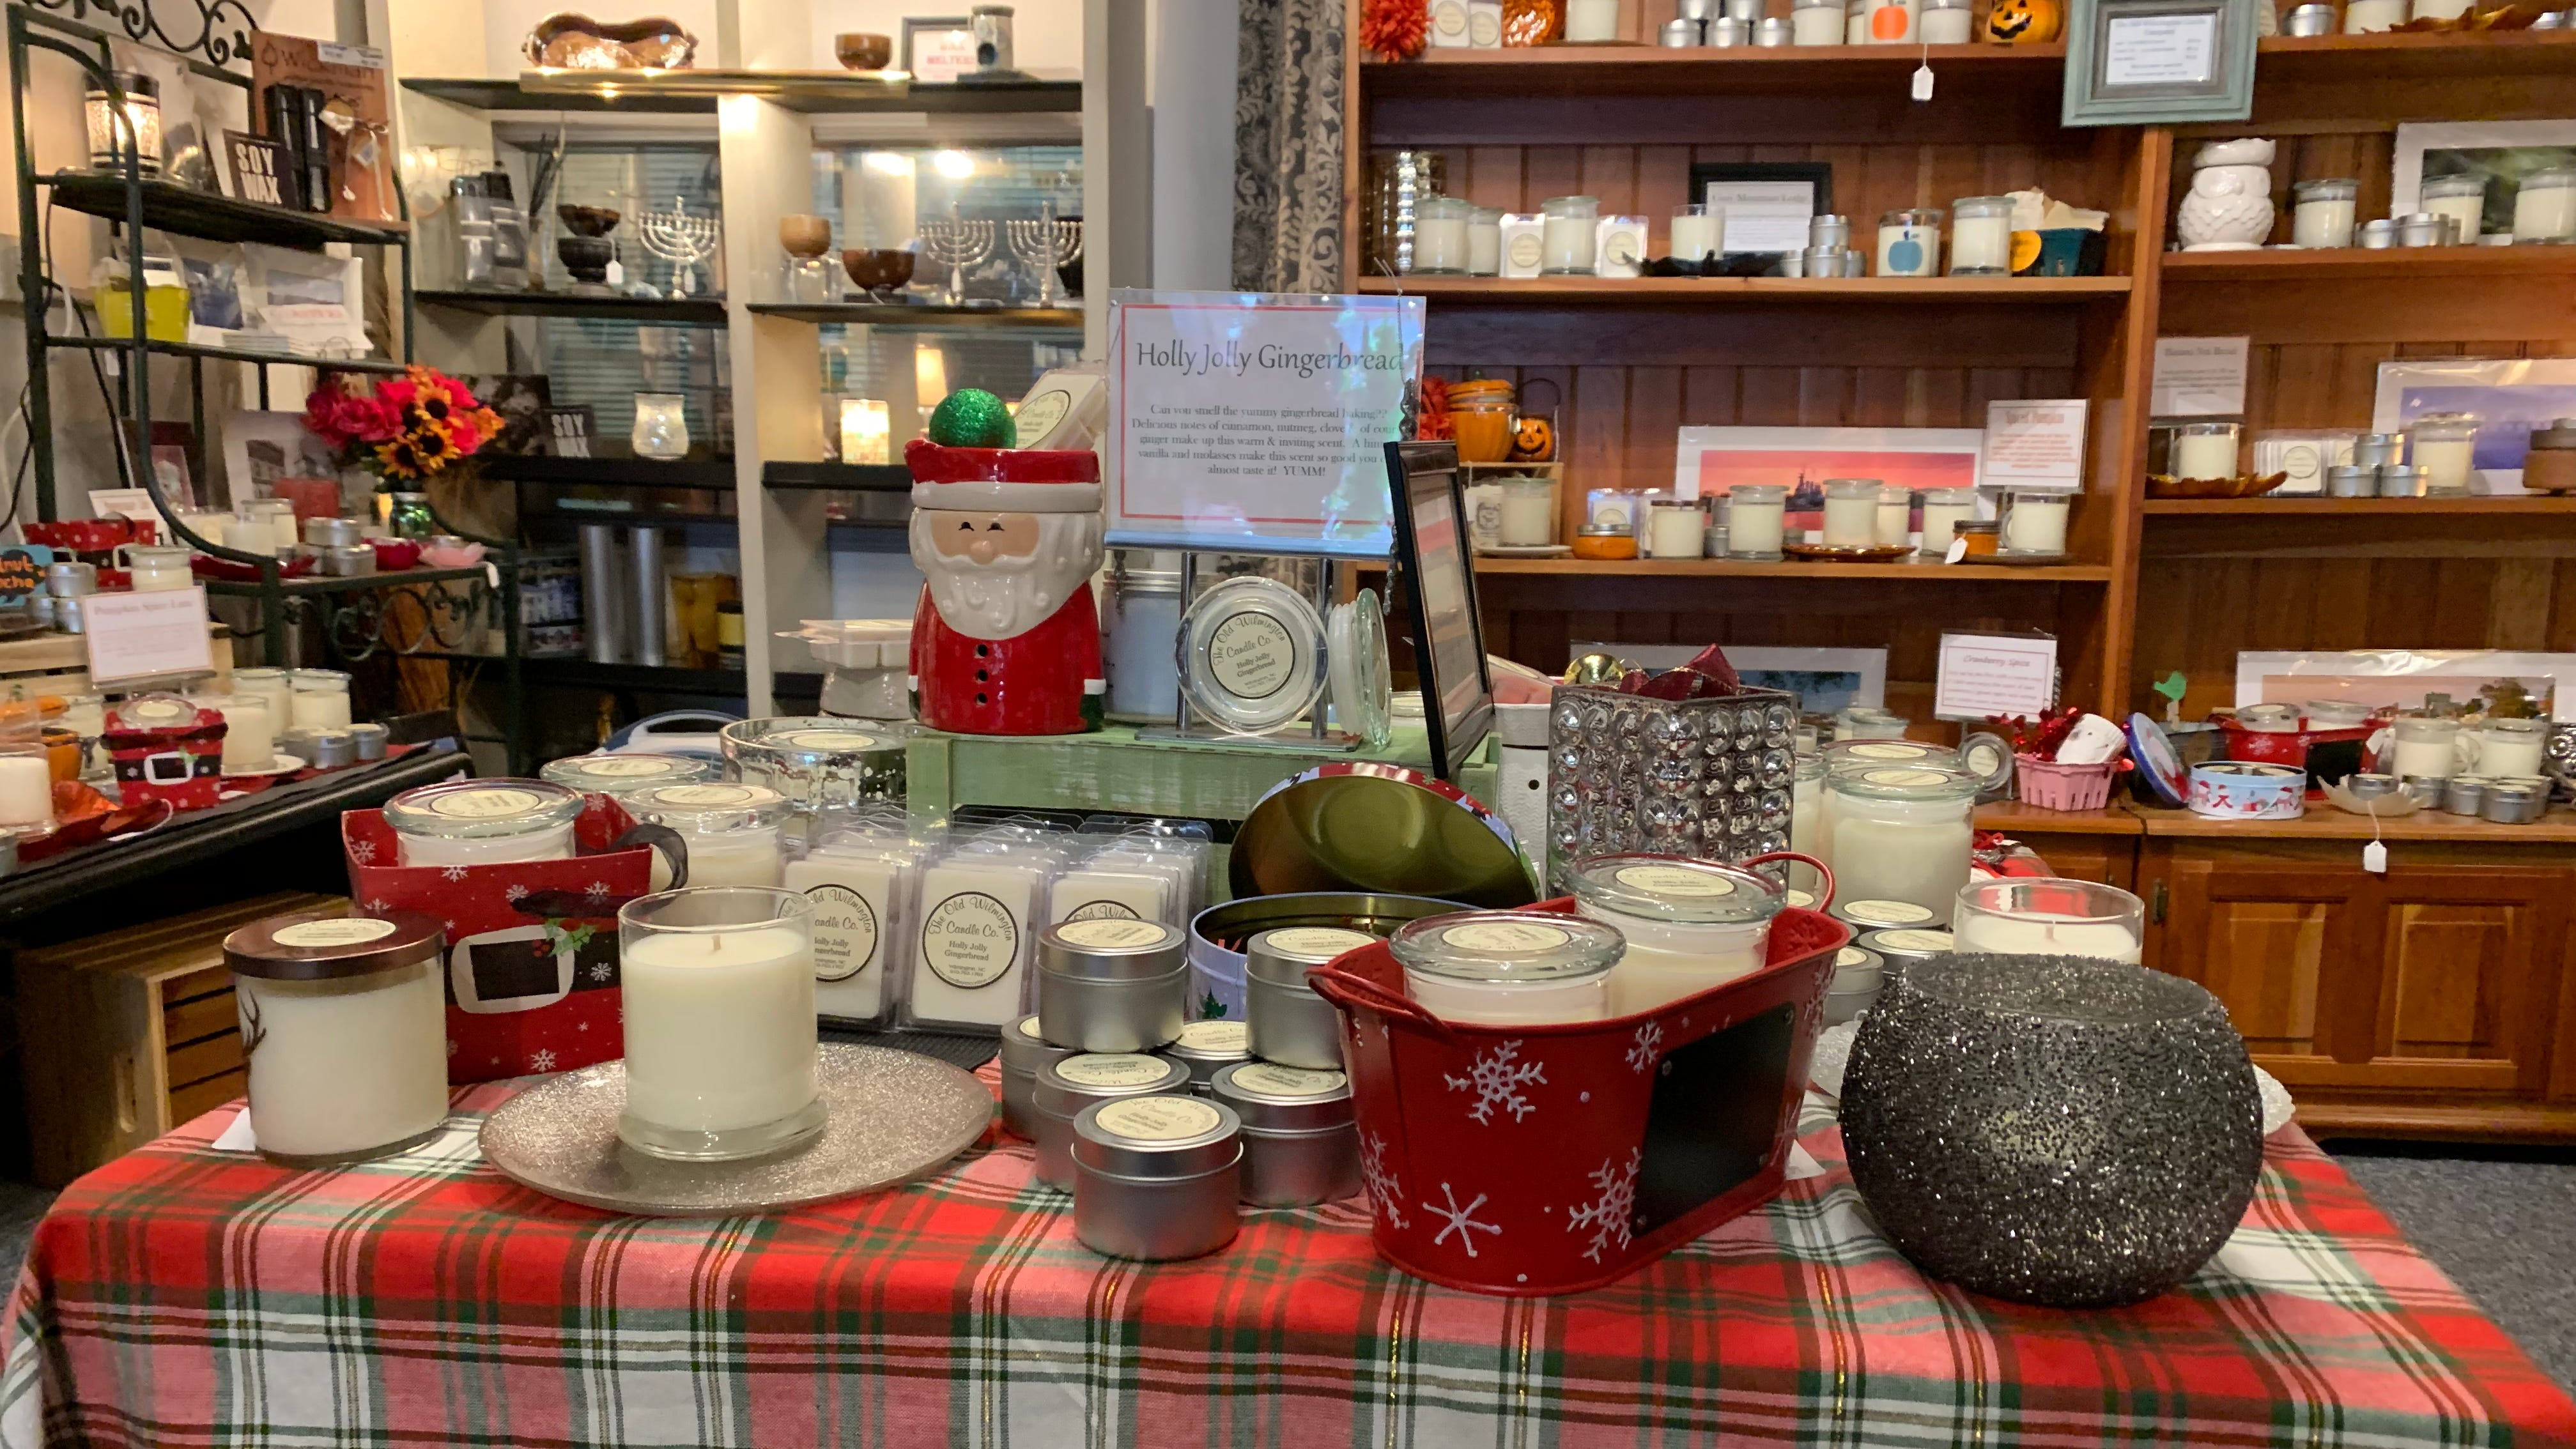 Candles Etc. offers many scents of candles and all are created in downtown Wilmington. The store has many Christmas gifts to choose from this holiday season